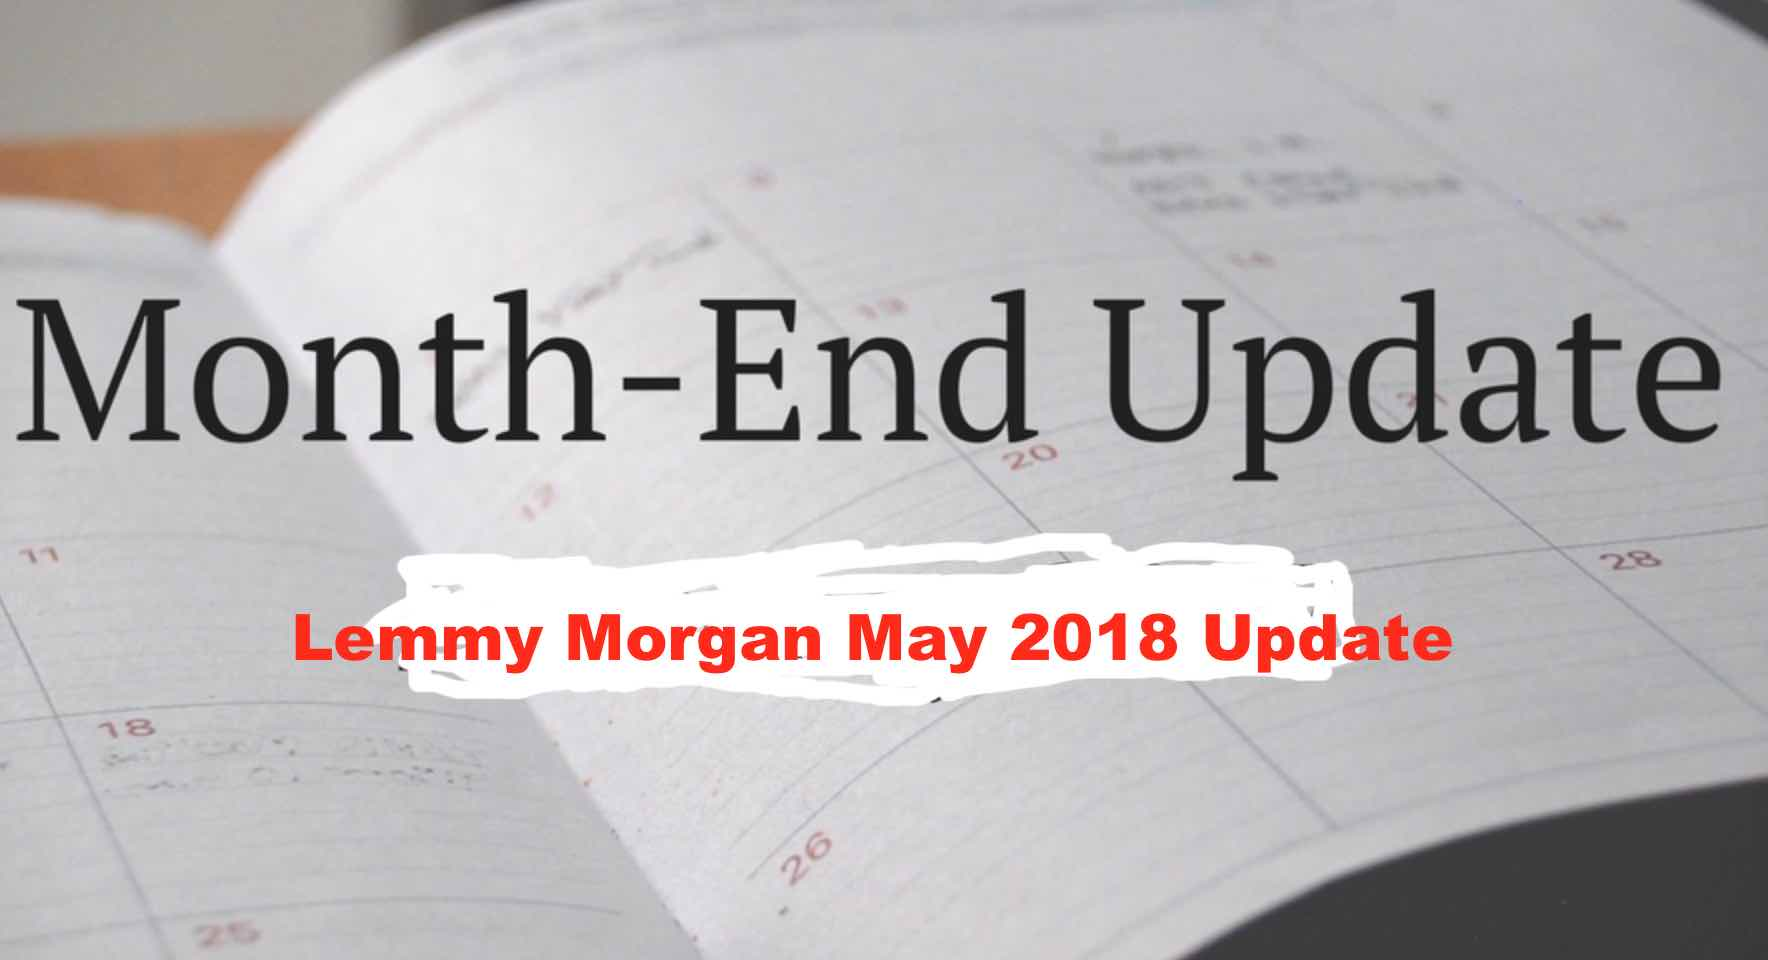 Lemmy Morgan May 2018 Update: Satellite TV, Data promo, IPTV and other tech news